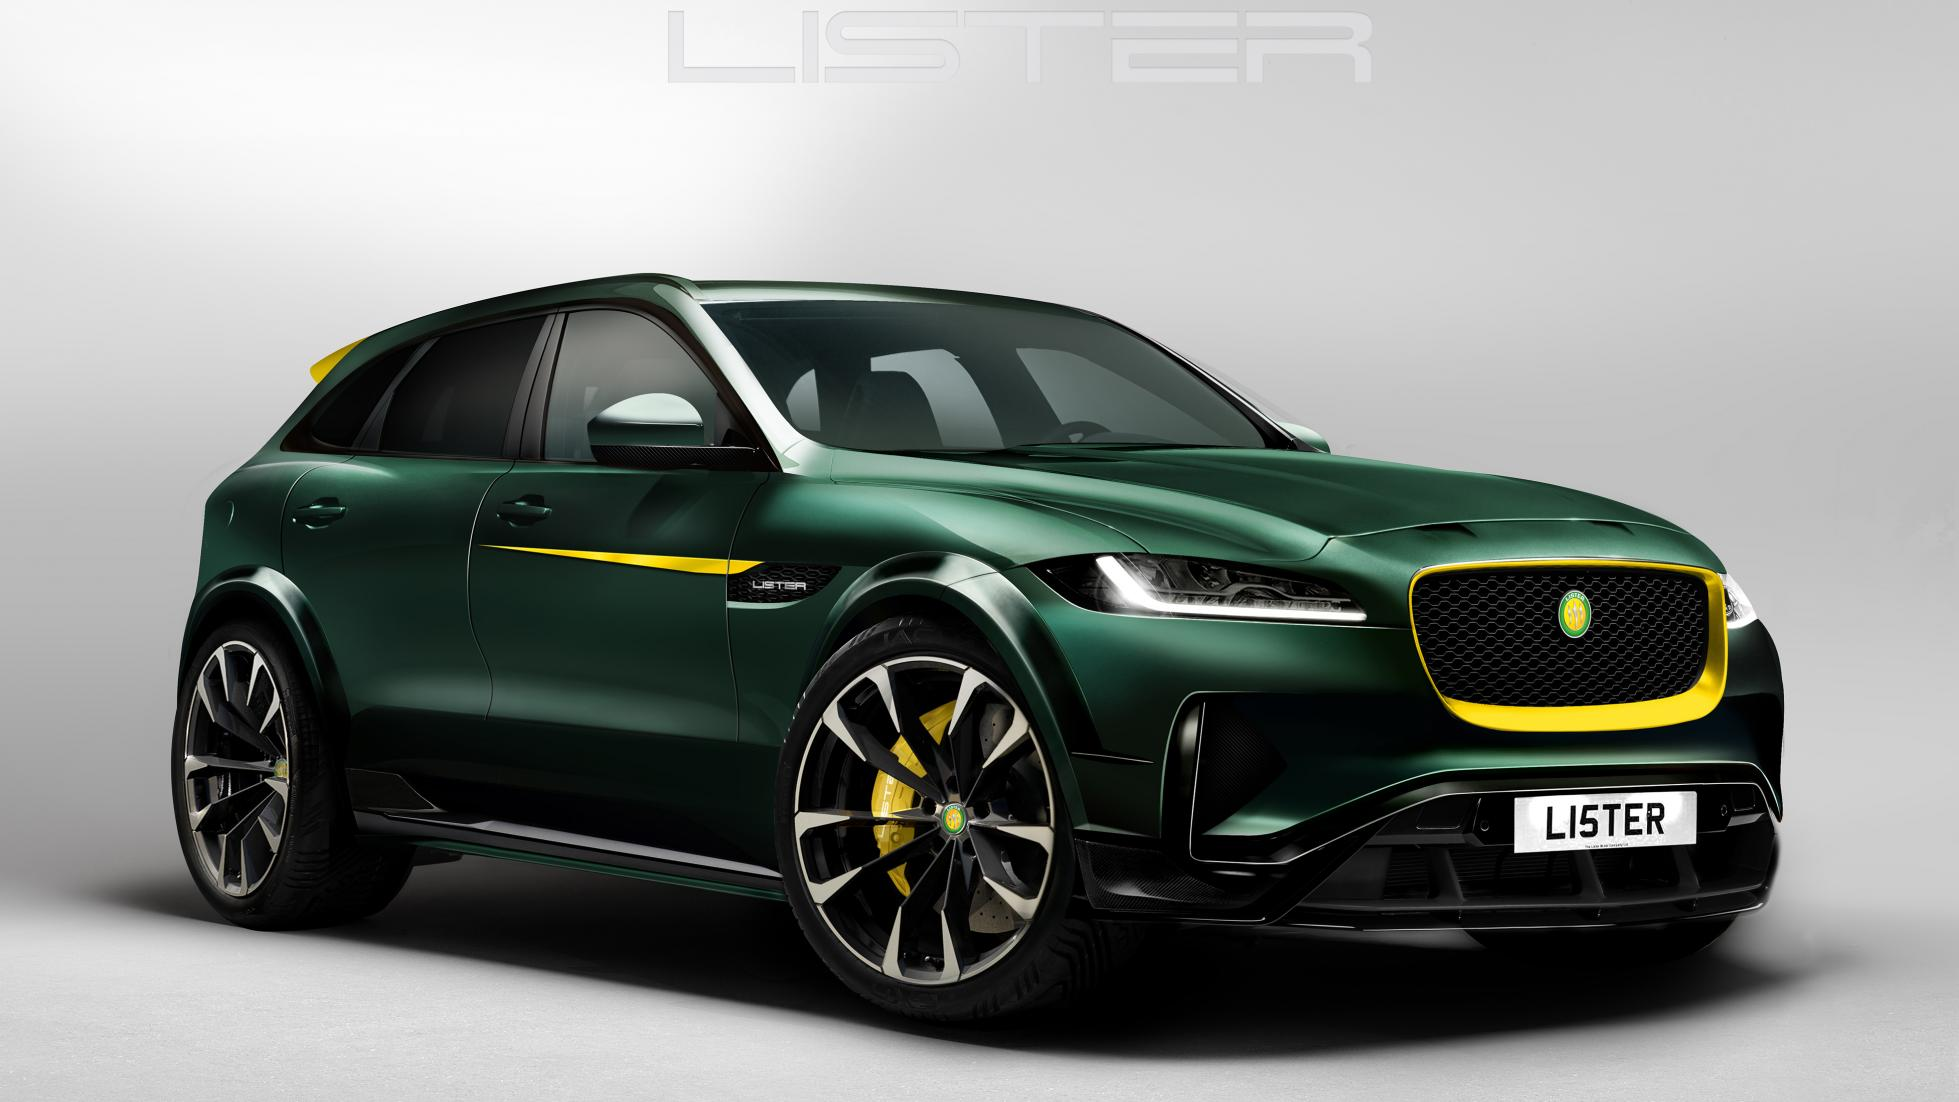 lister jaguar f pace revealed with 680hp and 200mph top speed gtspirit. Black Bedroom Furniture Sets. Home Design Ideas